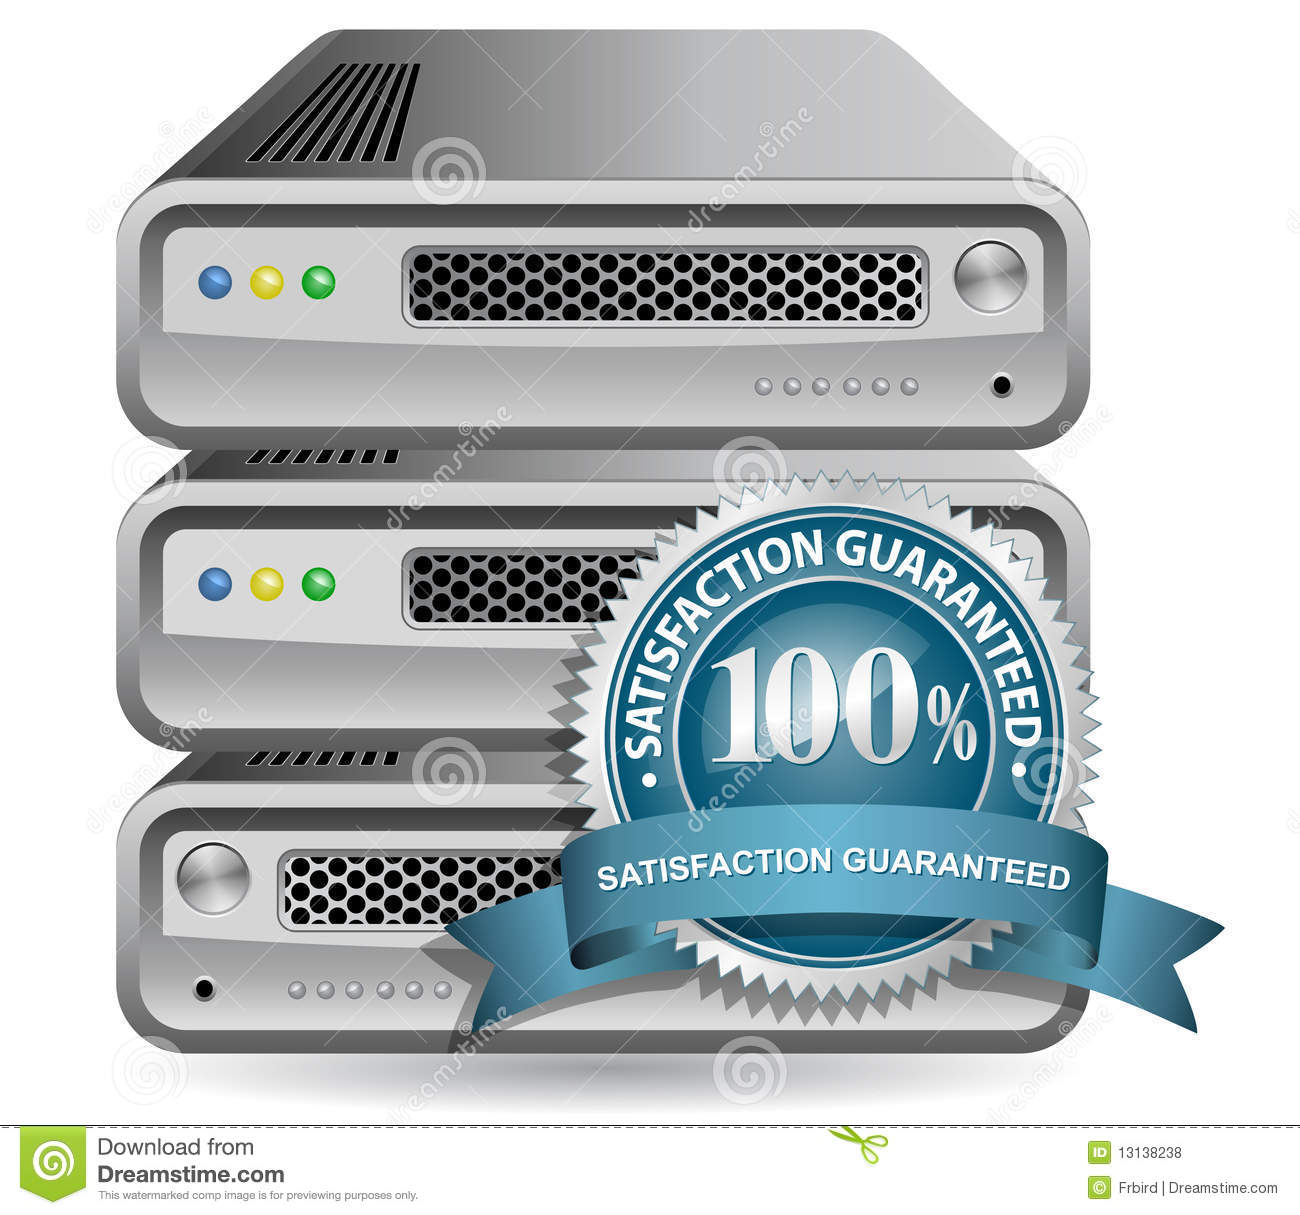 Network Equipment Icons : Network equipment icon stock photo image of router